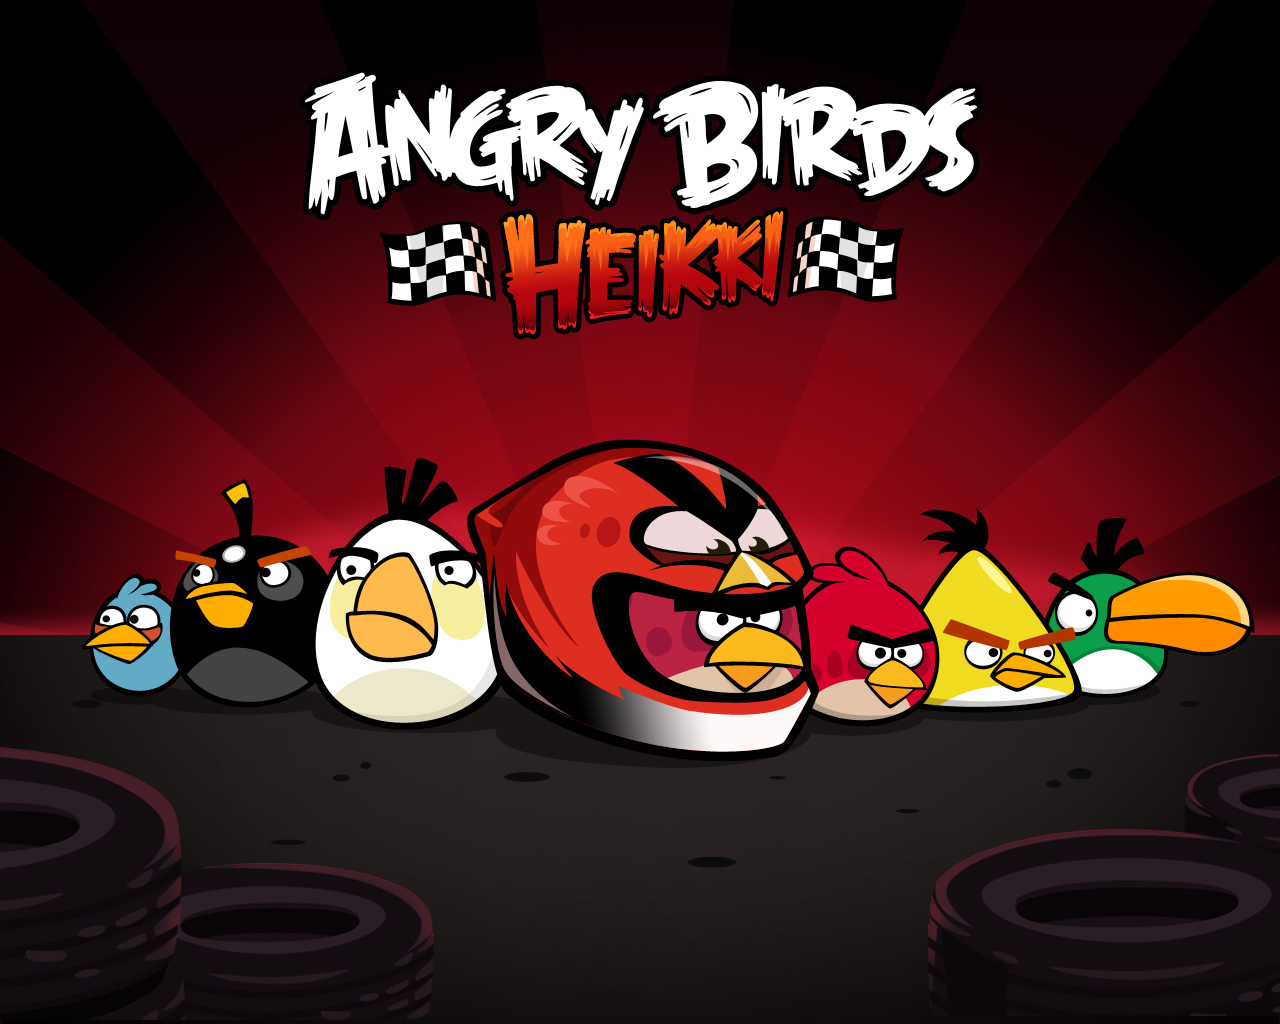 WP images: Angry bird